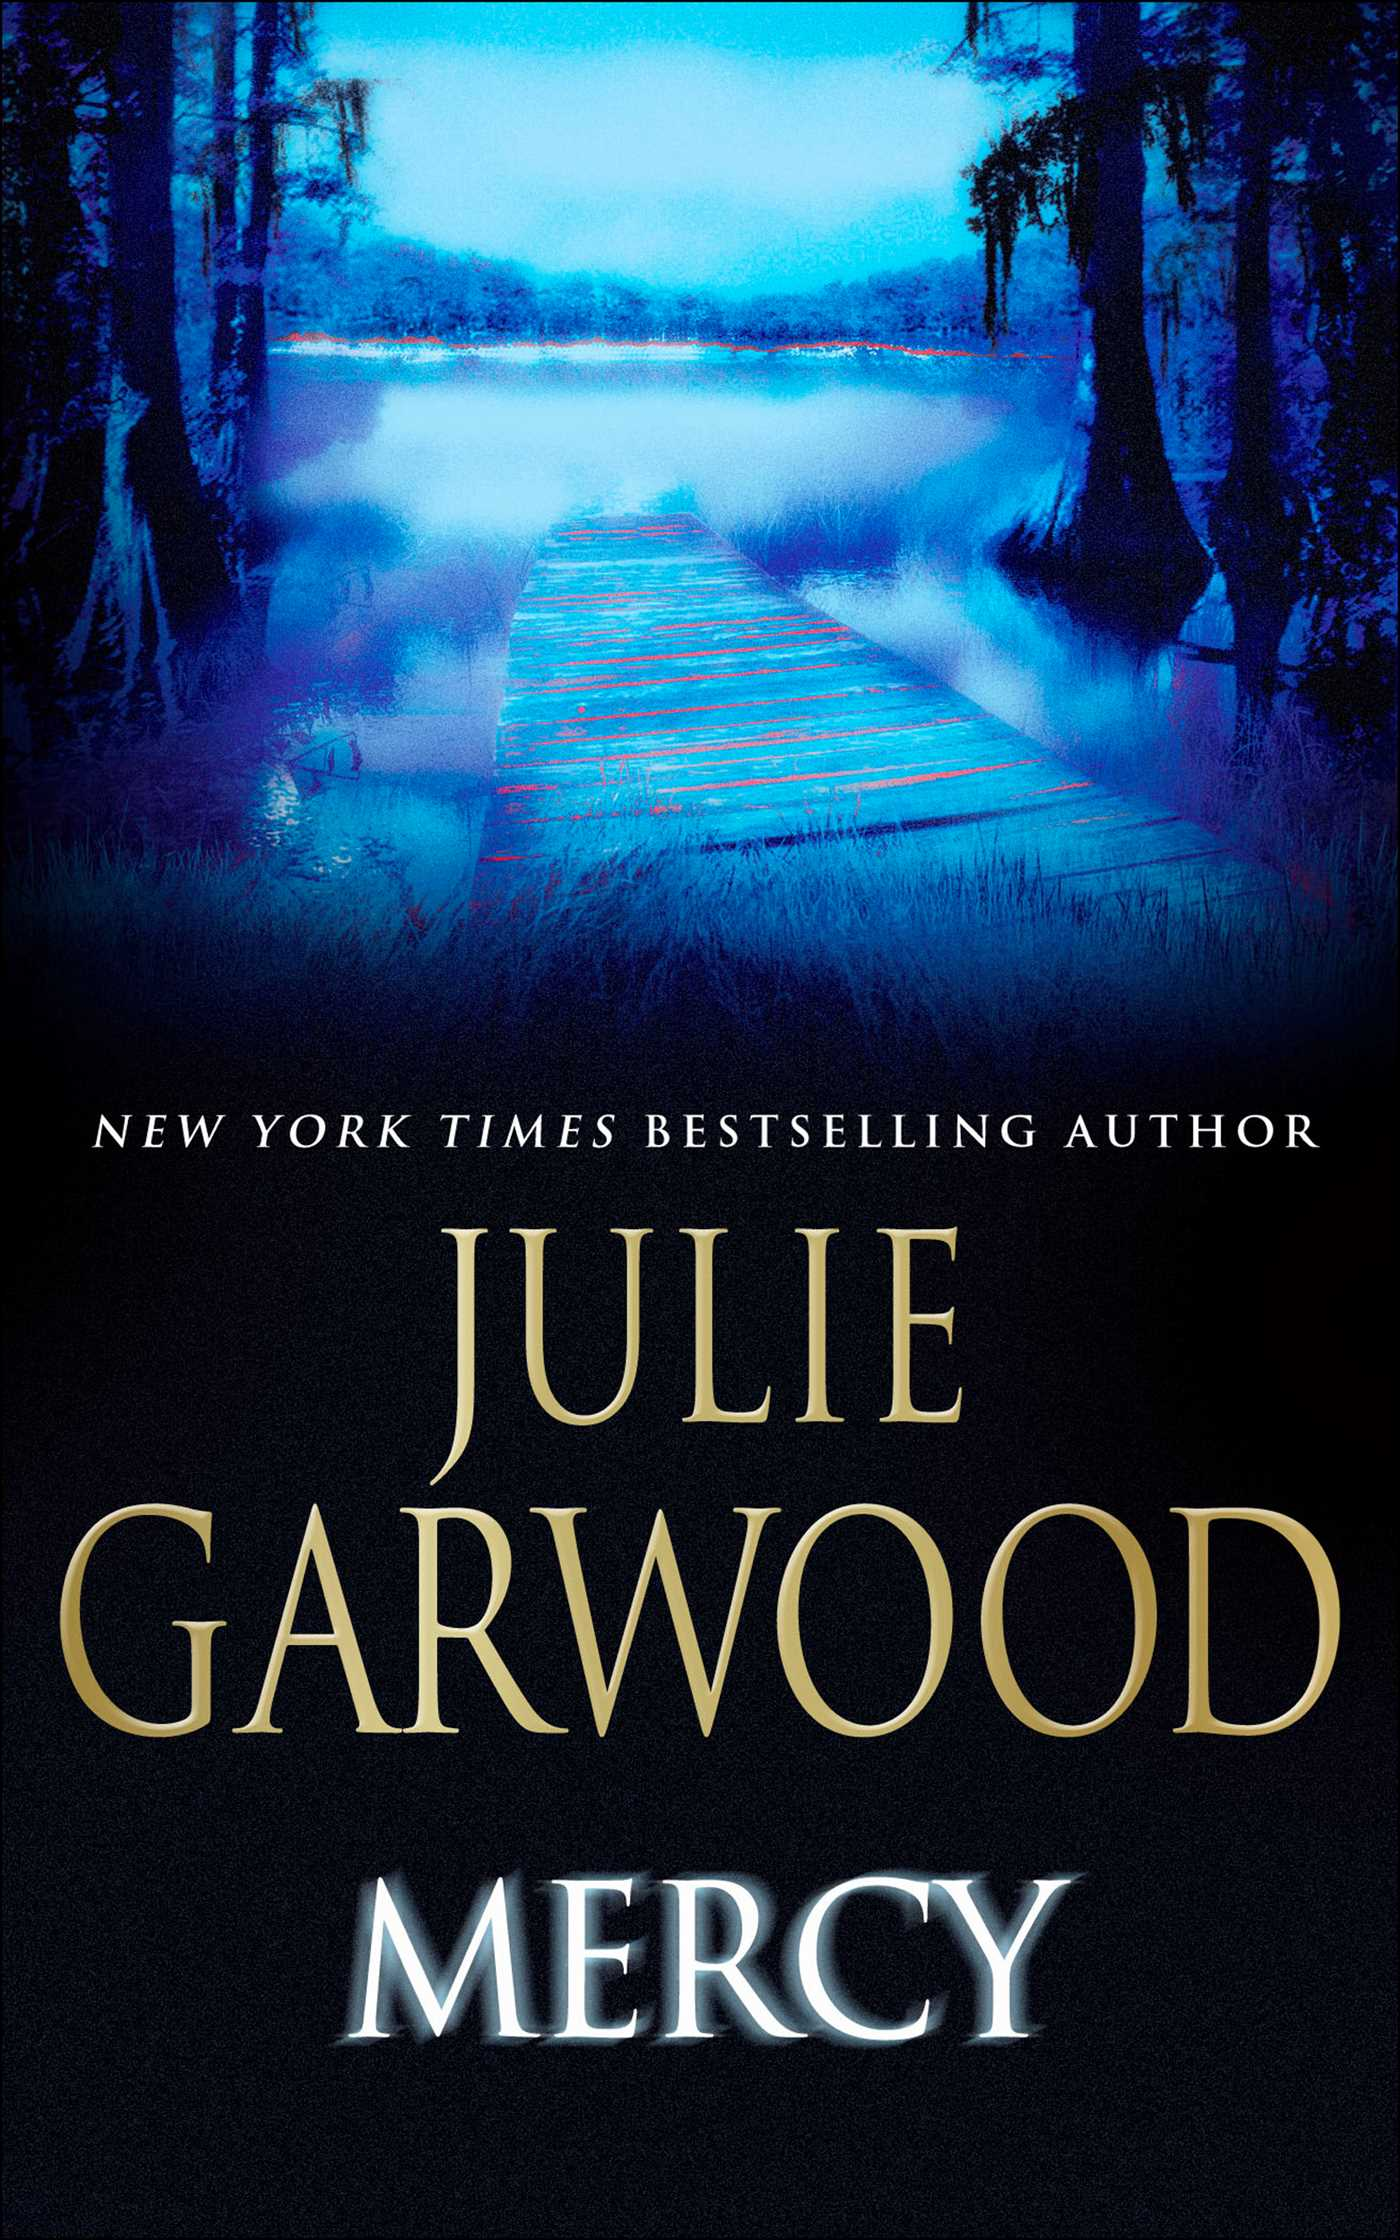 Pdf garwood wired julie